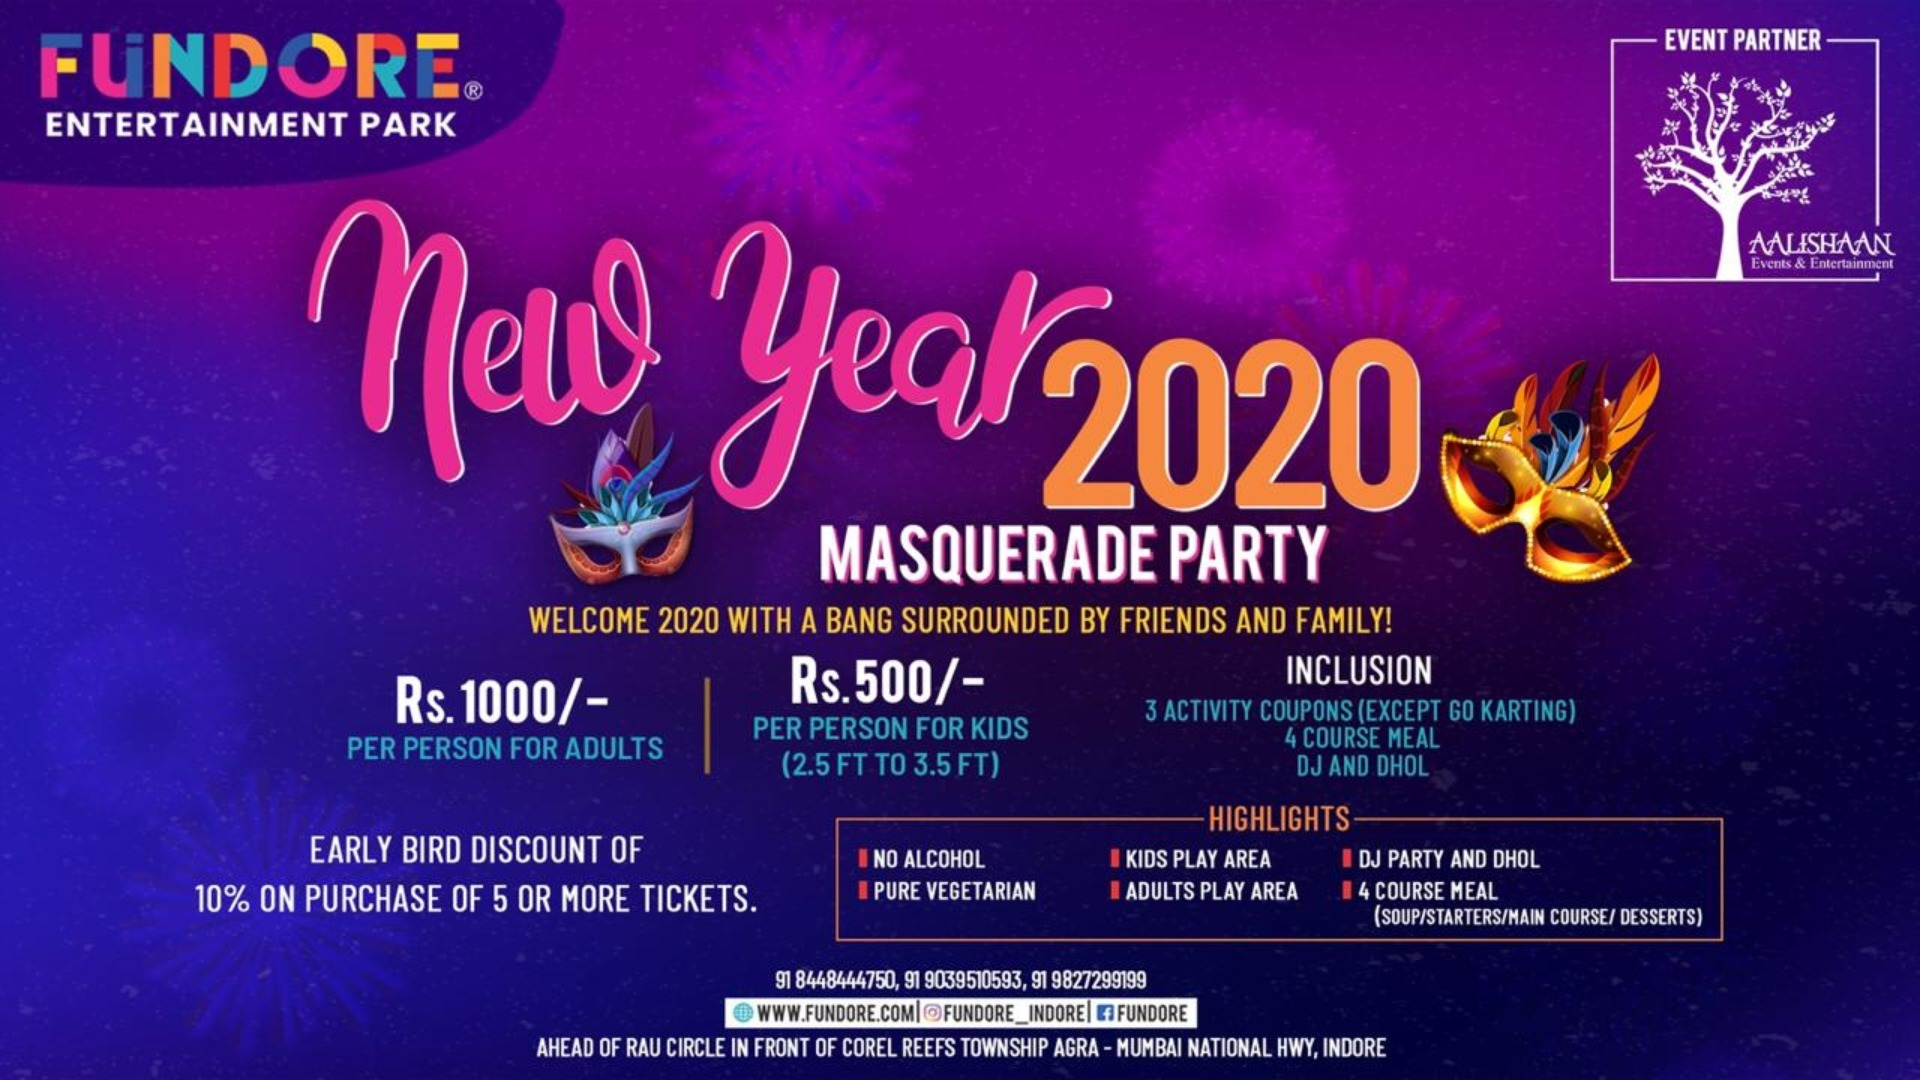 New Year Party With Family At Fundore Tickets By Fundore Entertainment Park Tuesday December 31 2019 Indore Event